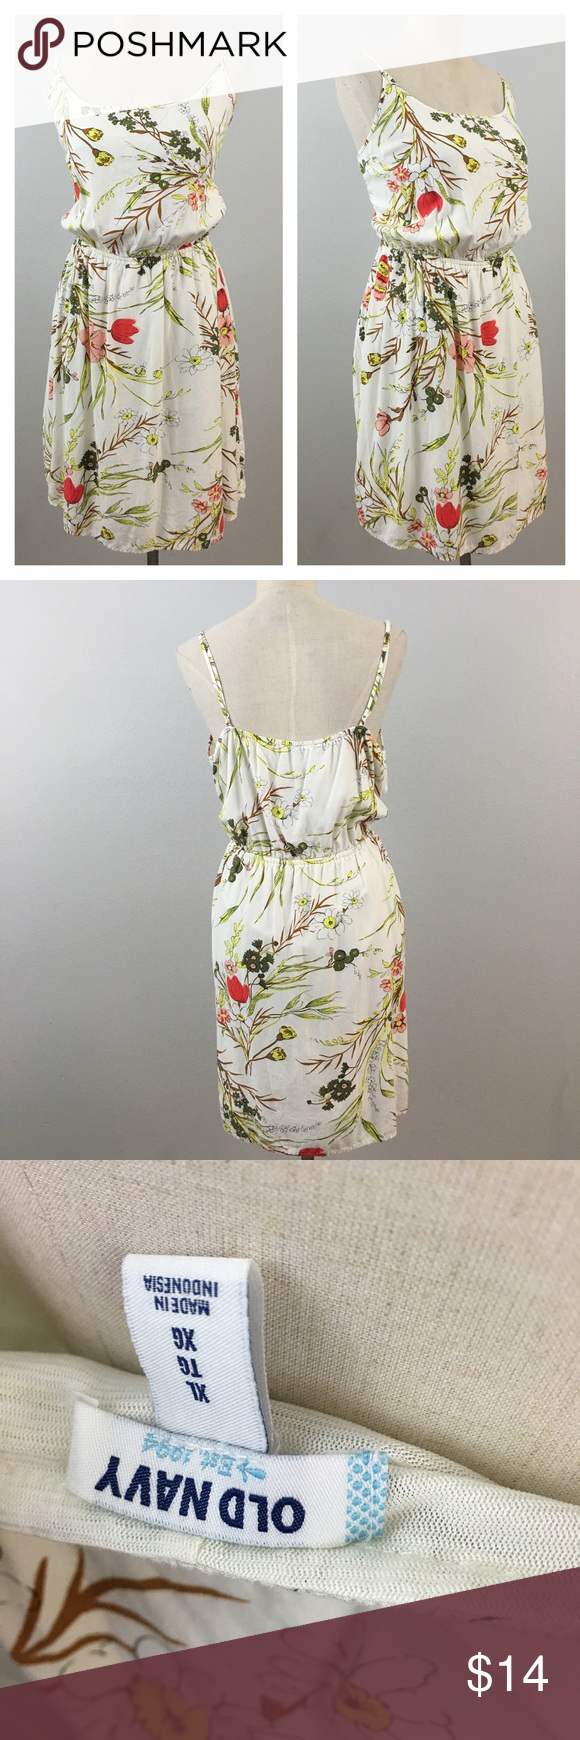 """Beautiful Printed Floral Tank Sun Dress Beautiful Printed Floral Tank Sun Dress. Size XL with stretch around the waist. Dress is fully lined and hits slightly above the knee in length.  Thank you for looking at my listing. Please feel free to comment with any questions (no trades/modeling).  •Length: 36"""" •Condition: VGUC, no visible flaws.   ✨Bundle and save!✨10% off 2 items, 20% off 3 items & 30% off 5+ items! FA Old Navy Dresses Mini"""